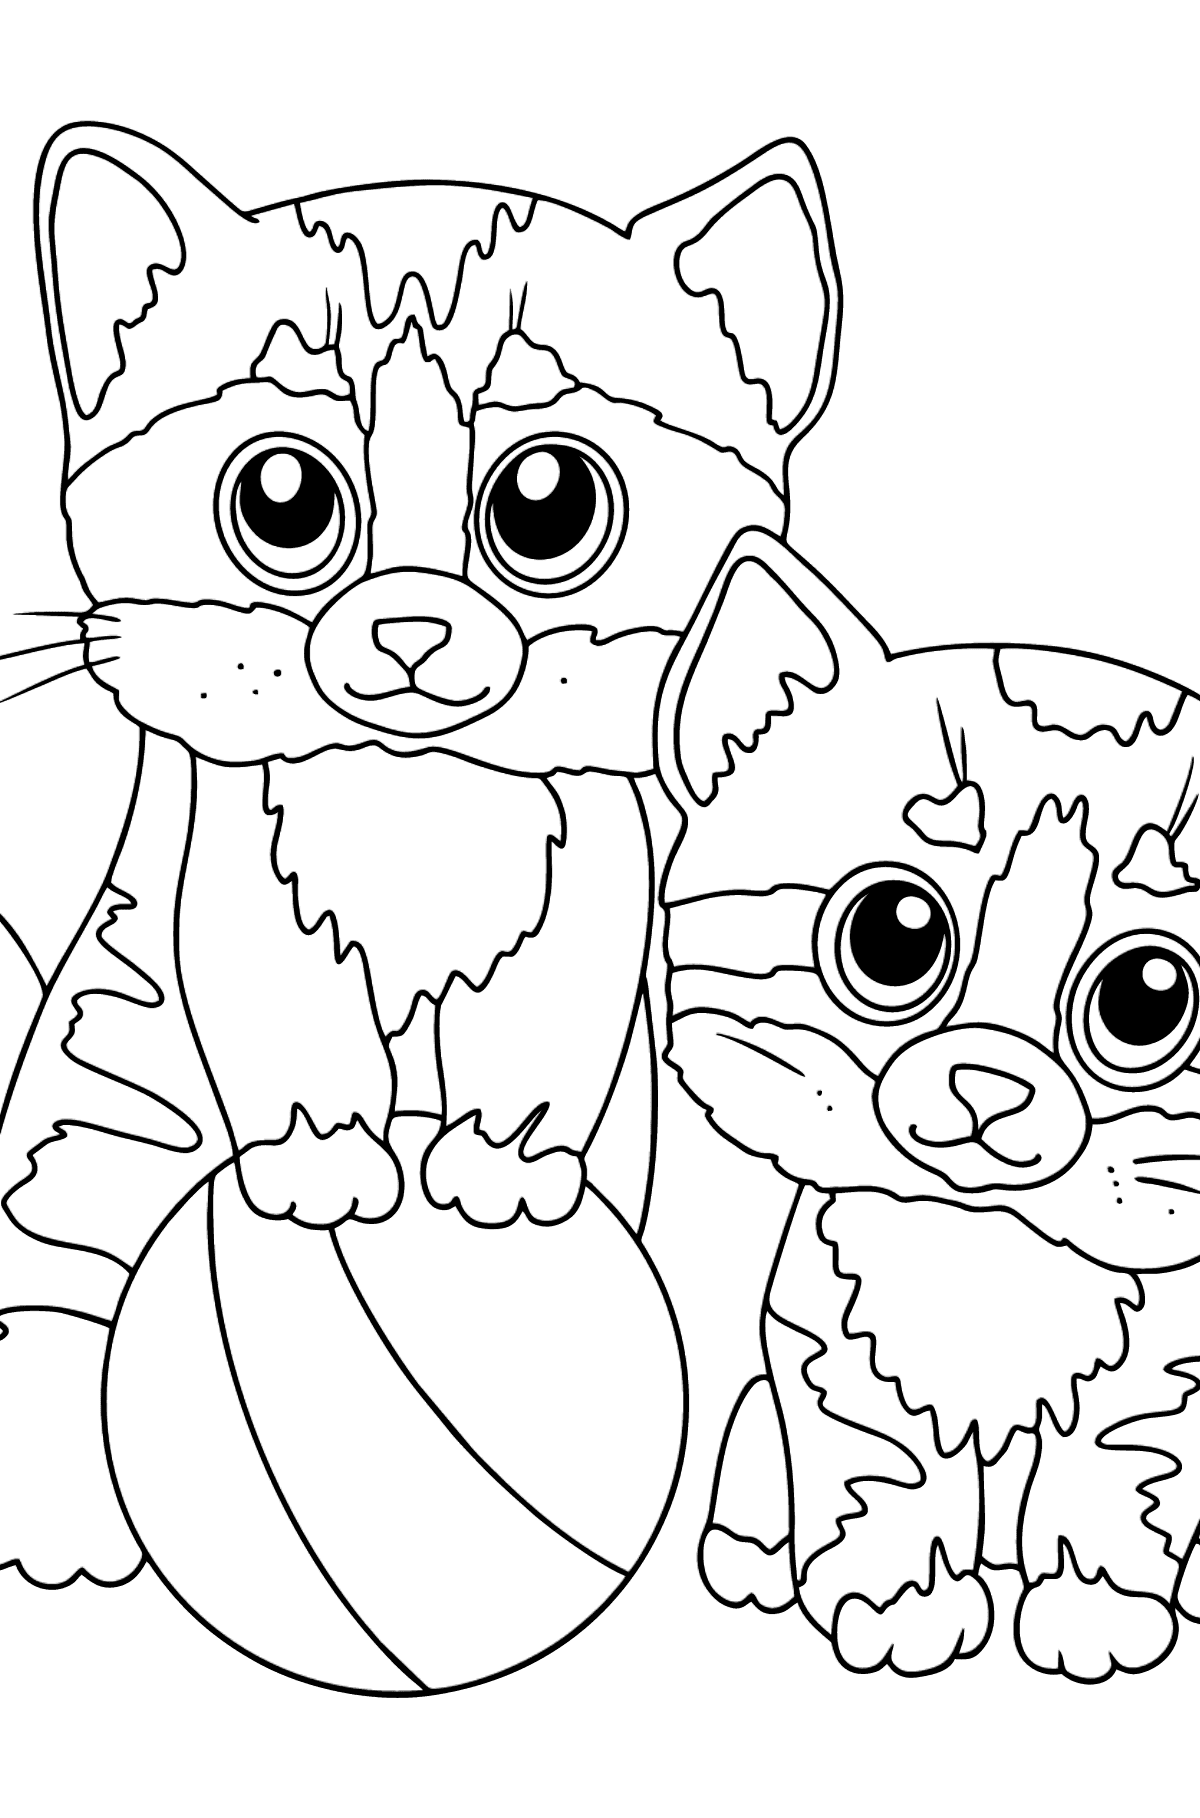 Coloring Page - Two Friendly Kittens Playing with a Ball - Coloring Pages for Kids